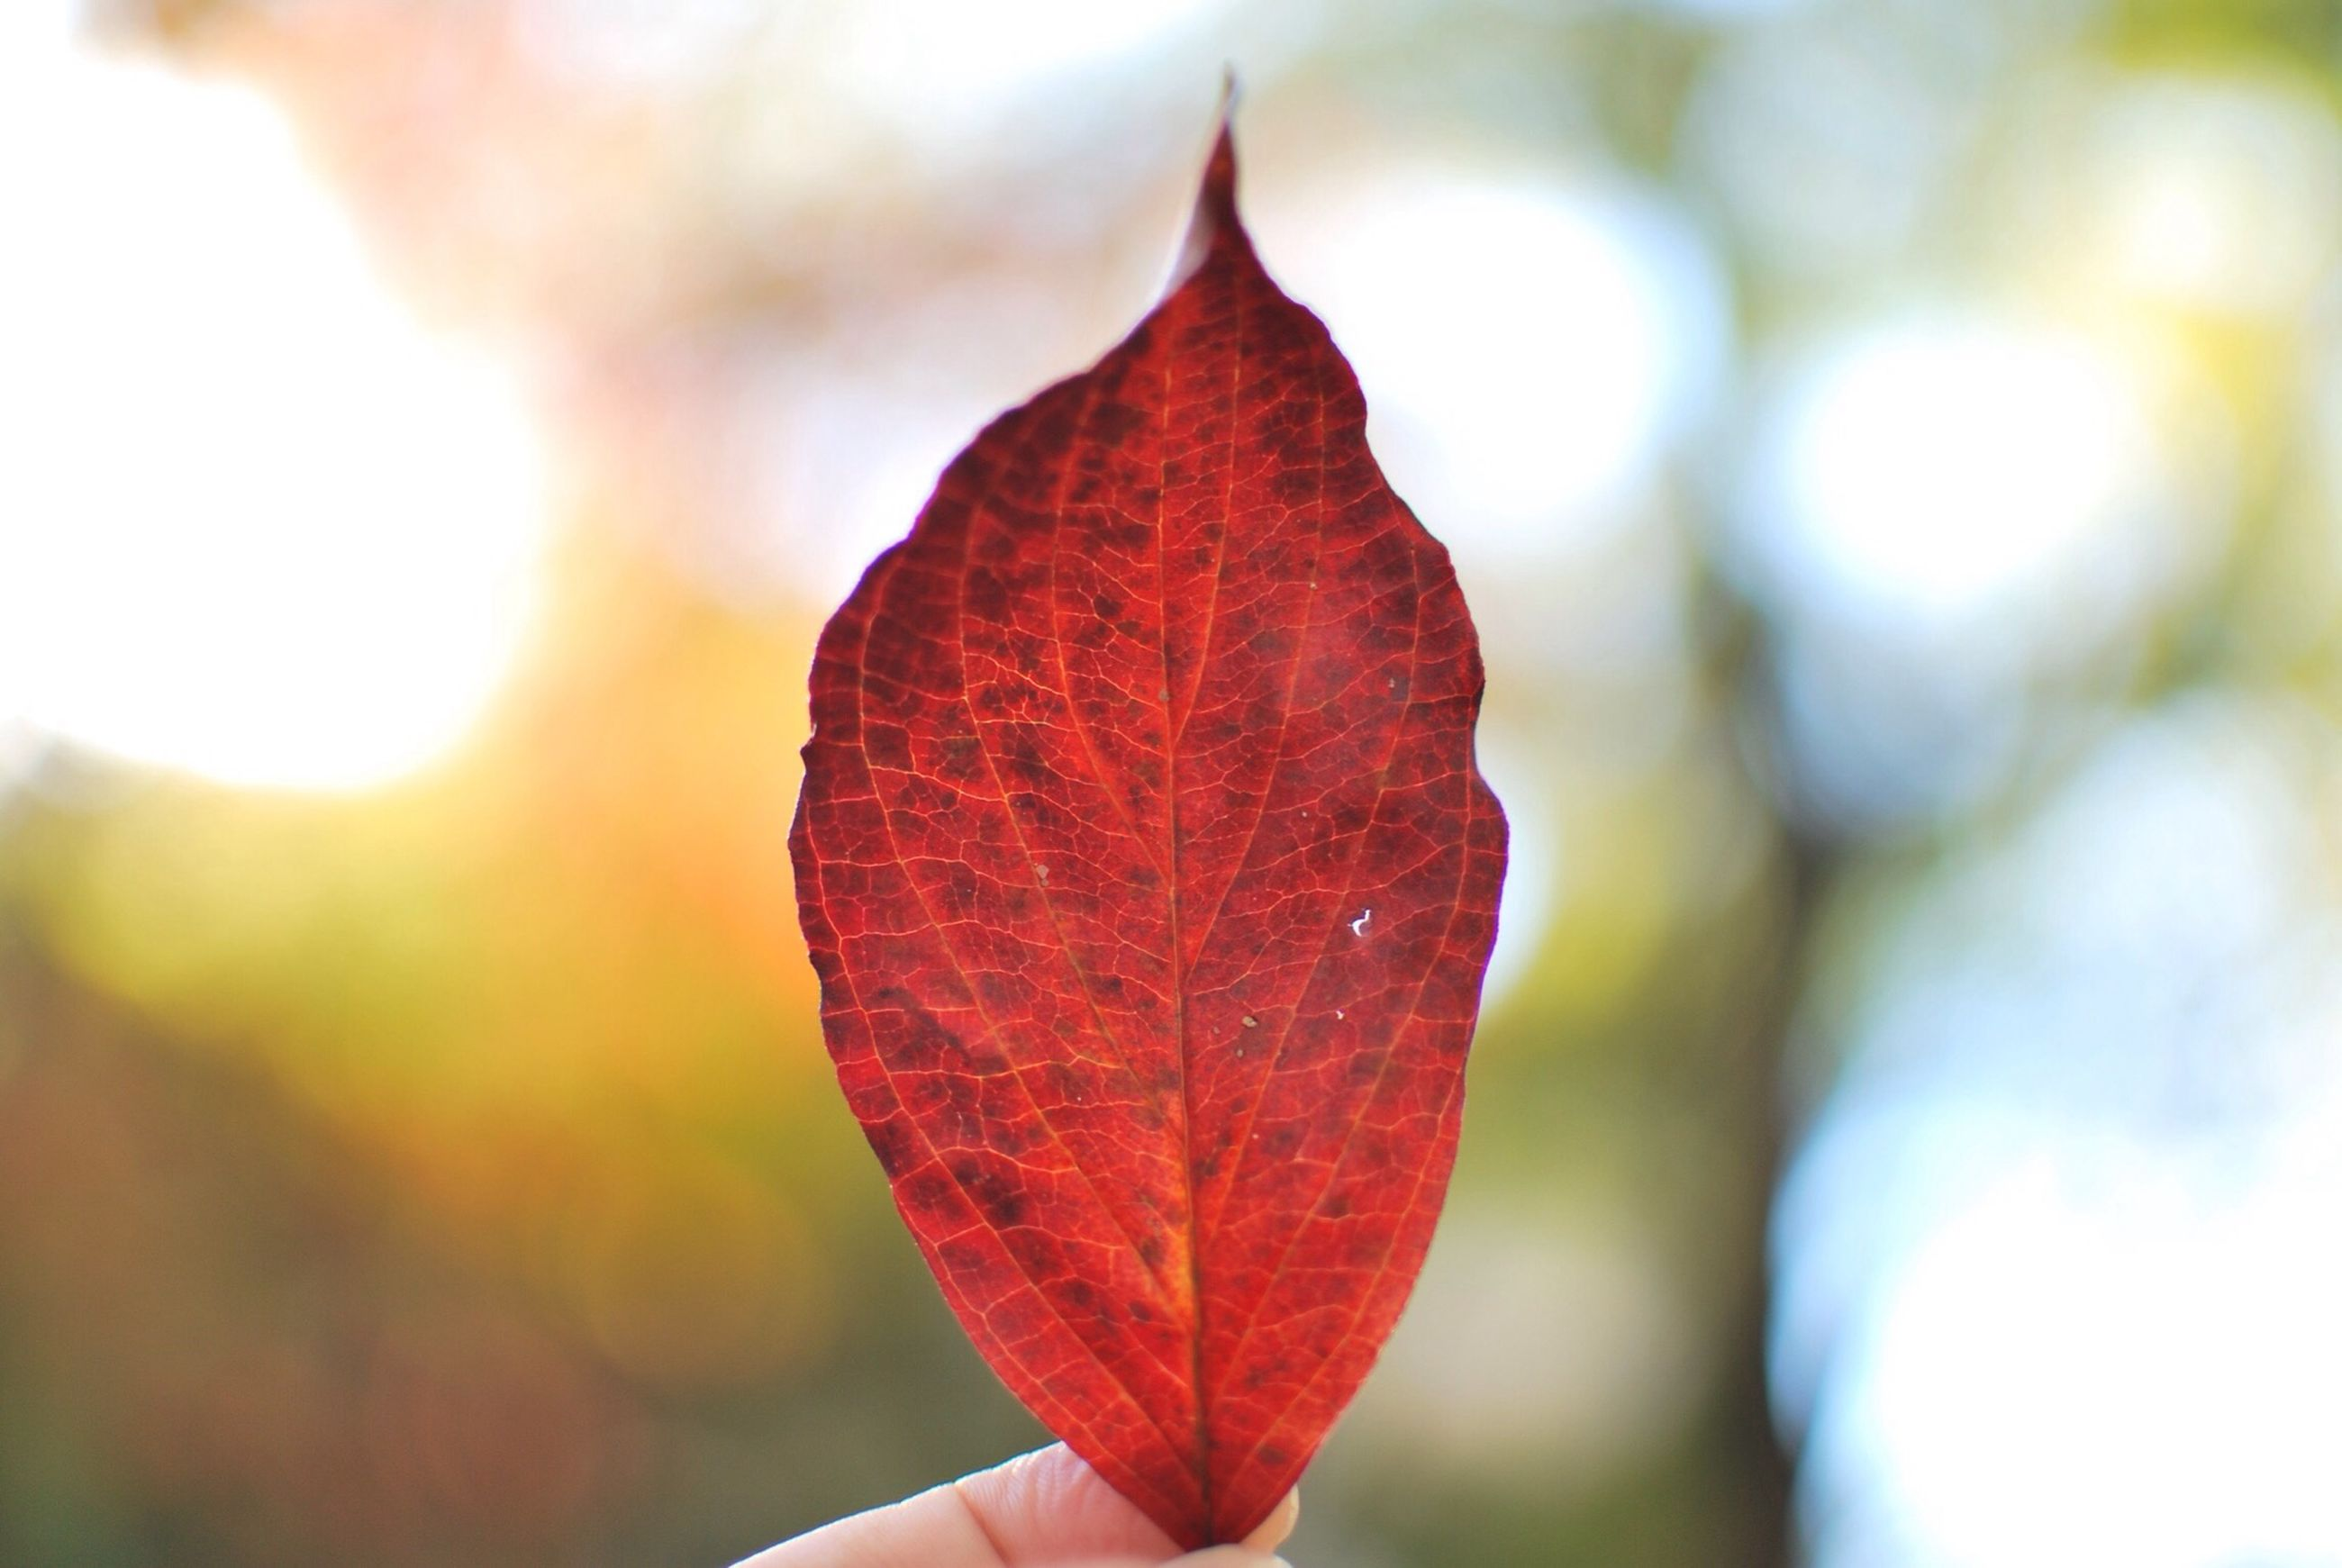 focus on foreground, leaf, close-up, leaf vein, autumn, season, change, nature, orange color, tree, natural pattern, maple leaf, sunlight, part of, leaves, branch, beauty in nature, selective focus, dry, growth